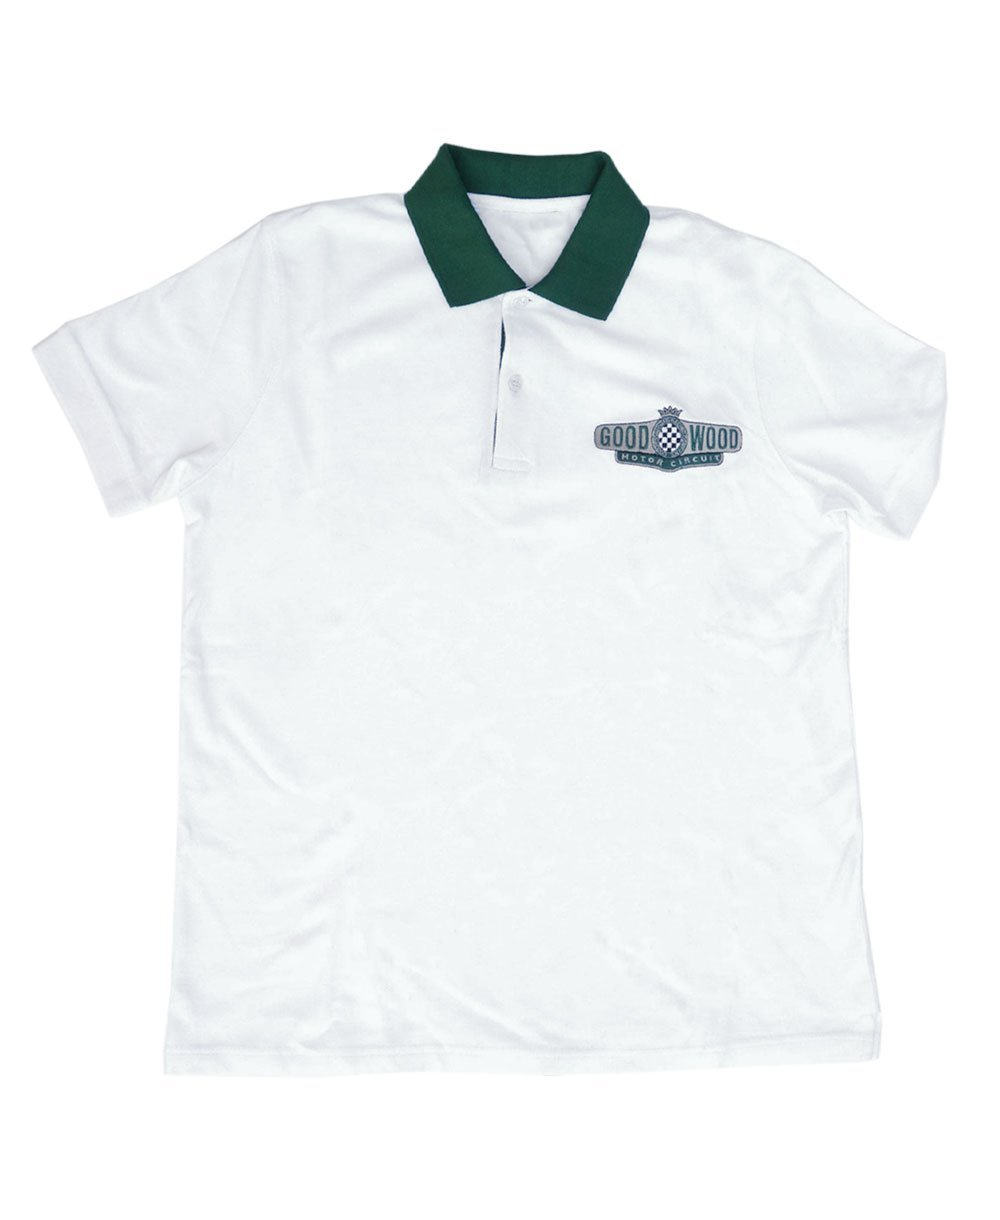 Goodwood Motor Circuit Cotton Mens White Green Polo Shirt